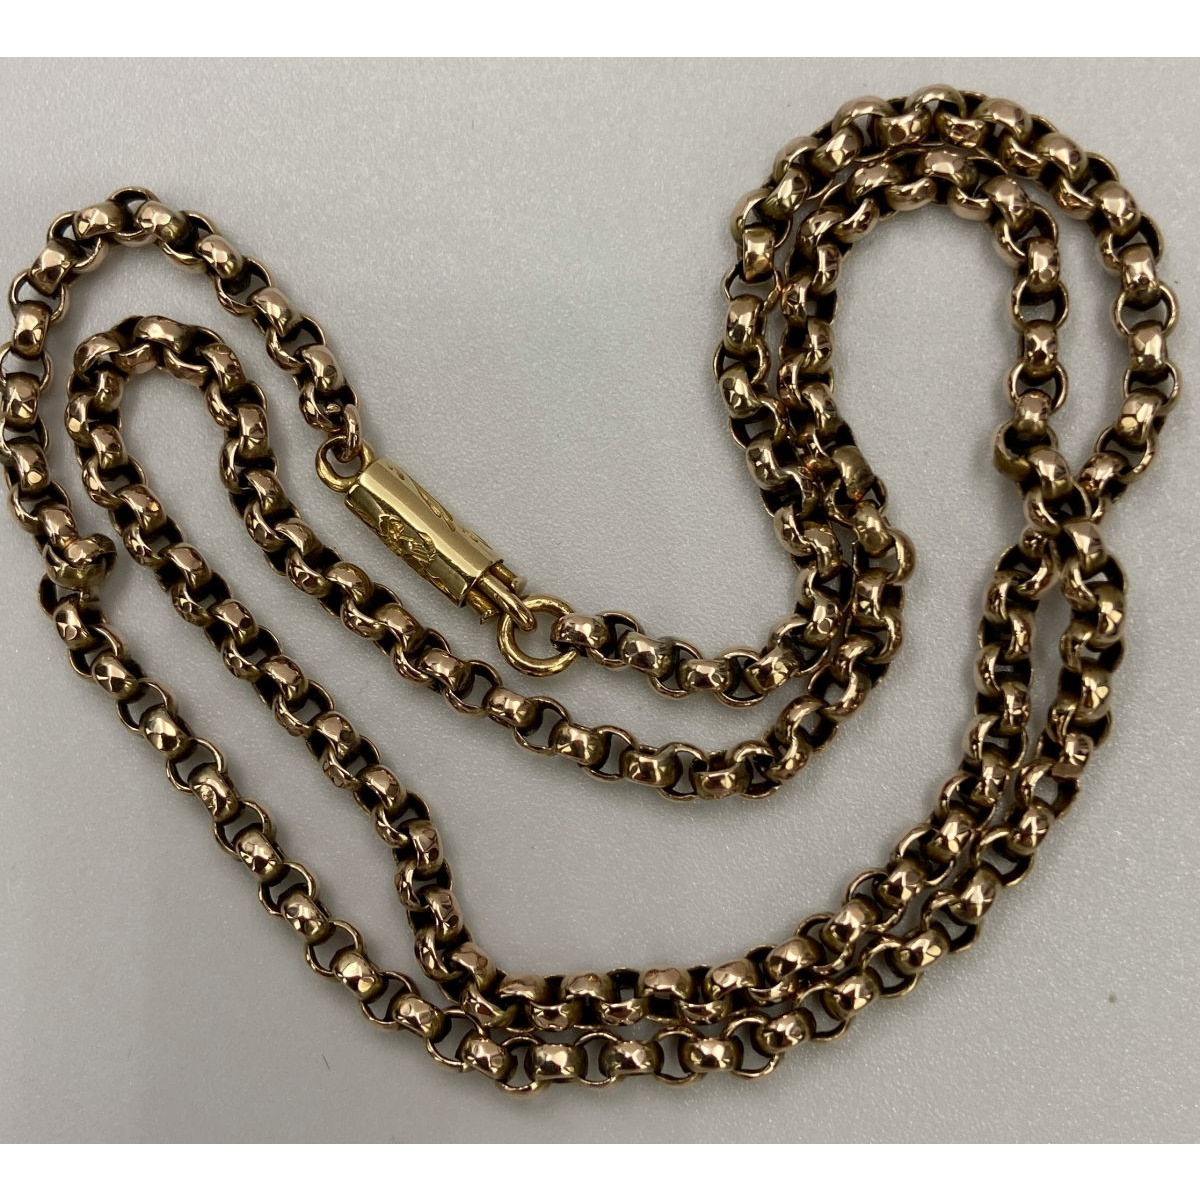 "16.5"" Small Rolo Link Antique English Gold Chain"